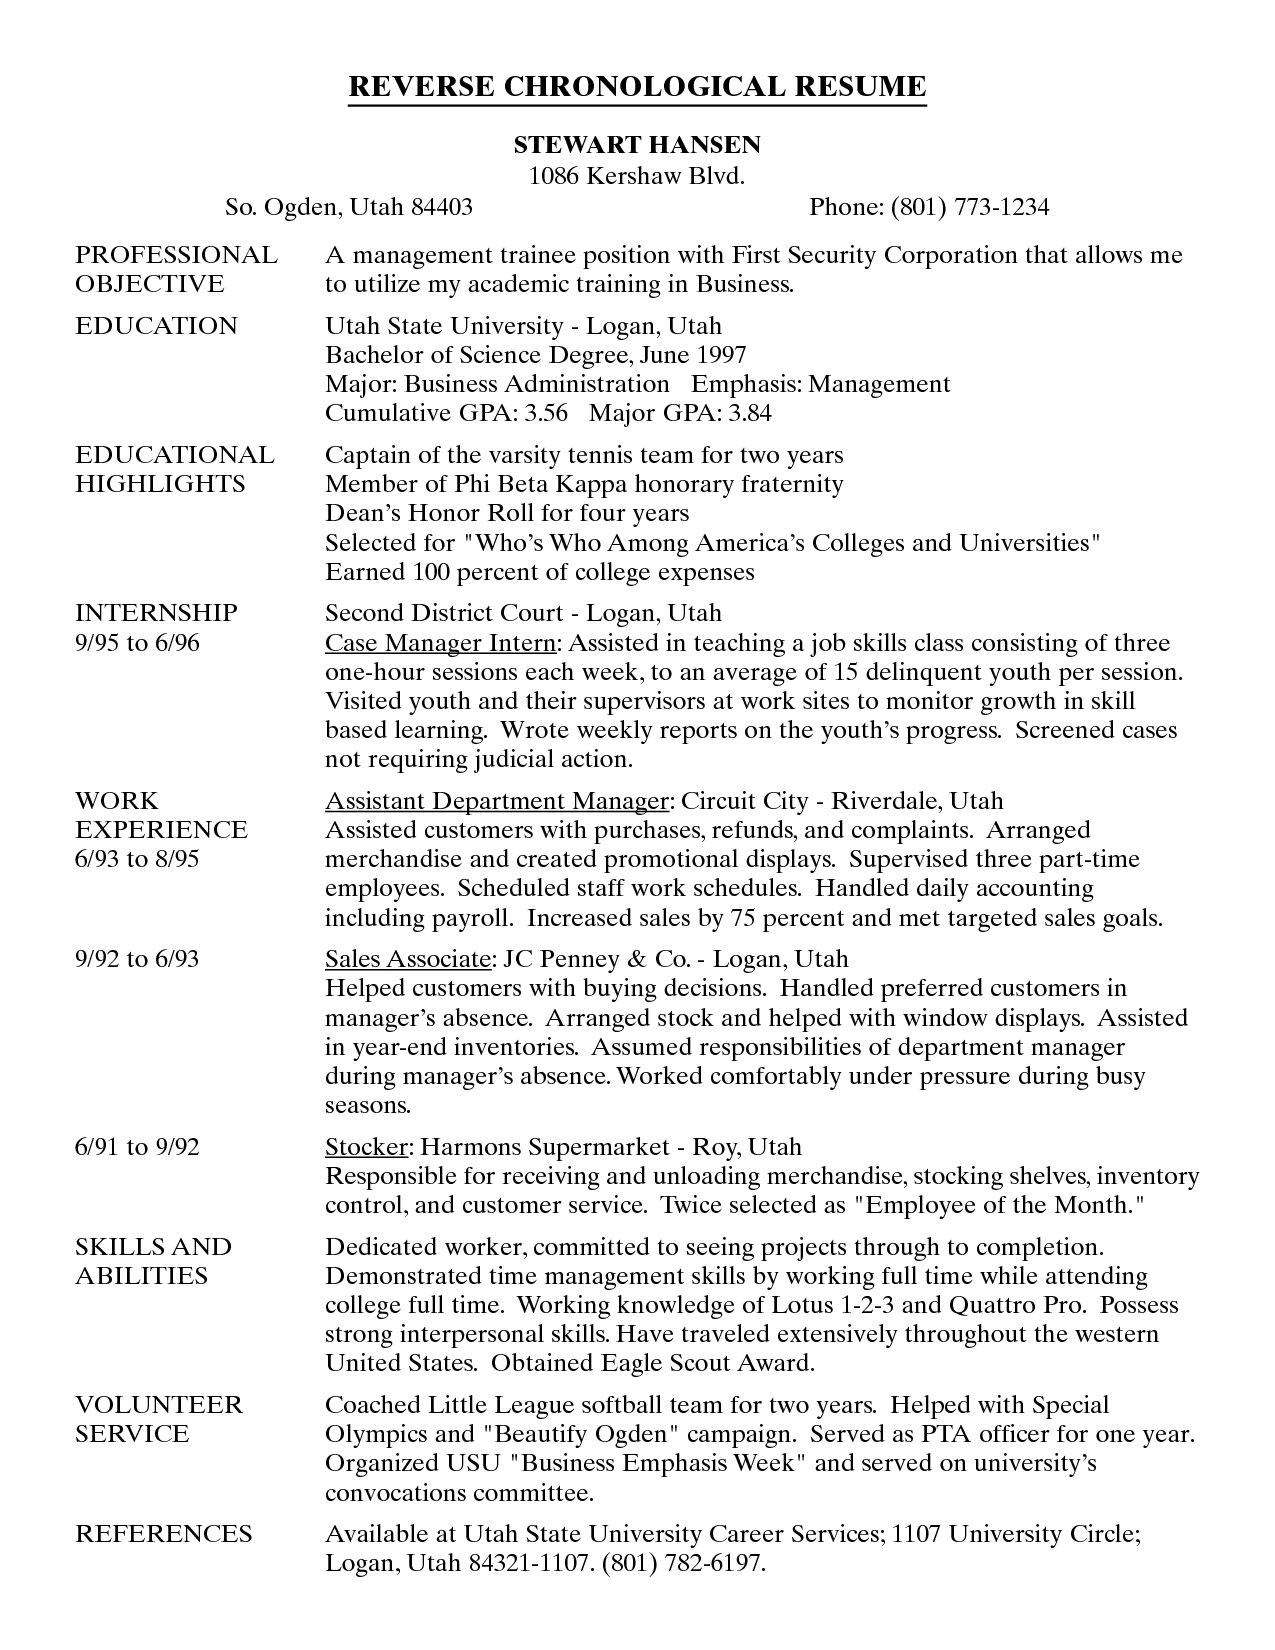 Chronological Order Resume Example Dc0364f86 The Reverse Chronological  Resume Example  Chronological Resume Examples